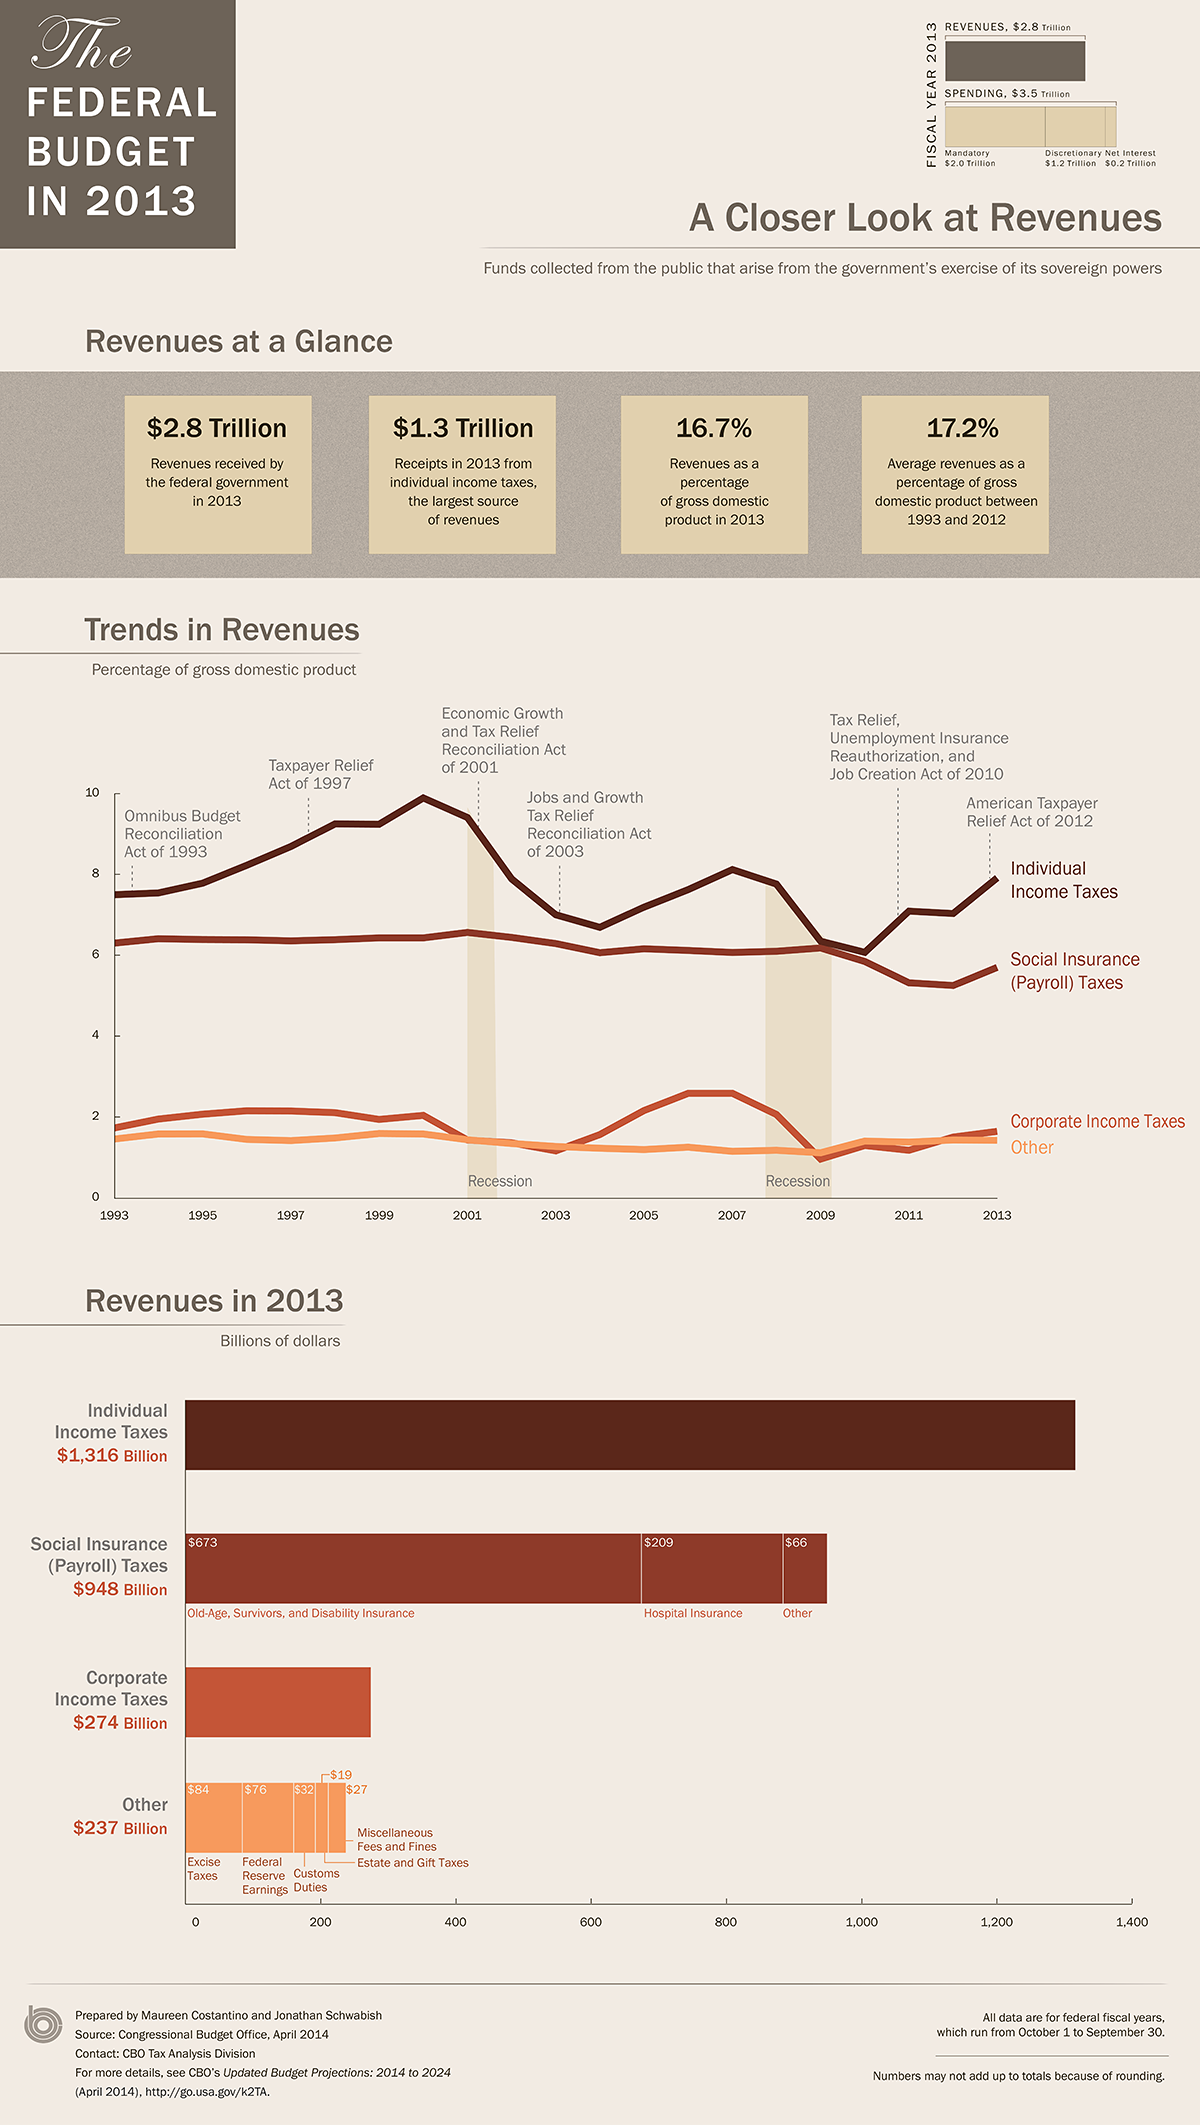 US Revenues in 2013: An Infographic